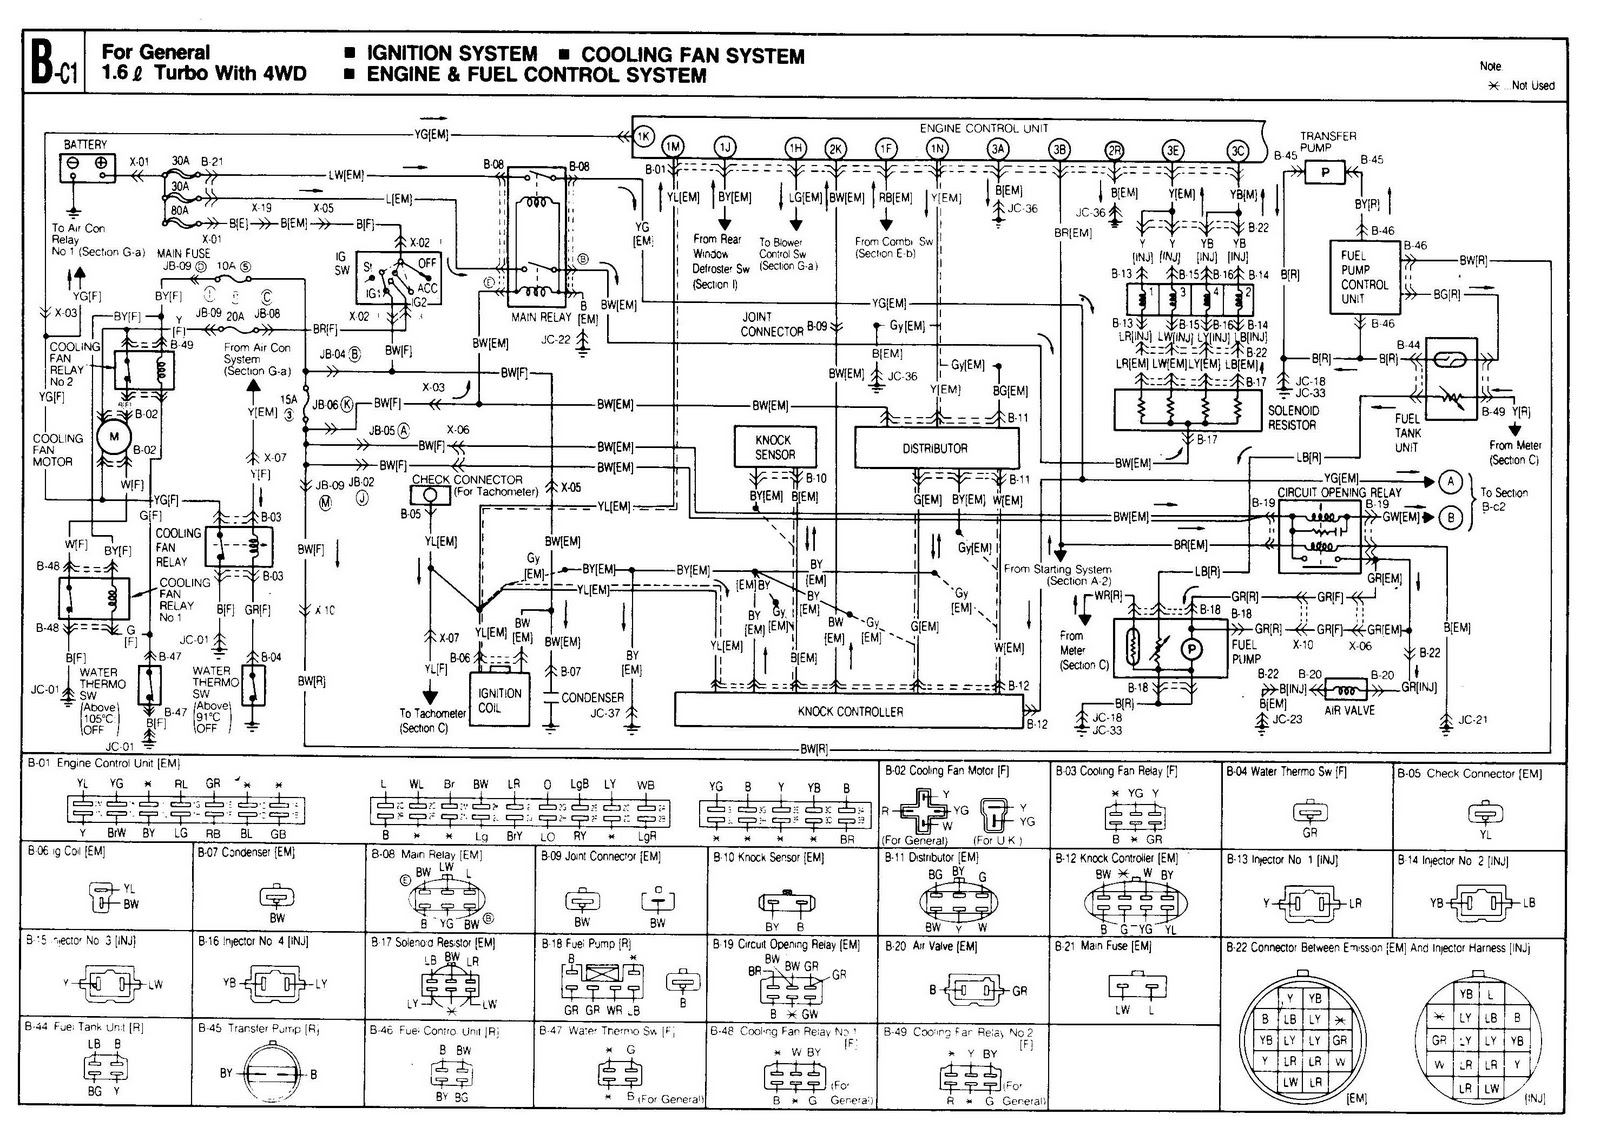 Diagram 91 Mazda Wiring Diagram Full Version Hd Quality Wiring Diagram Inschematick Abctrentino It